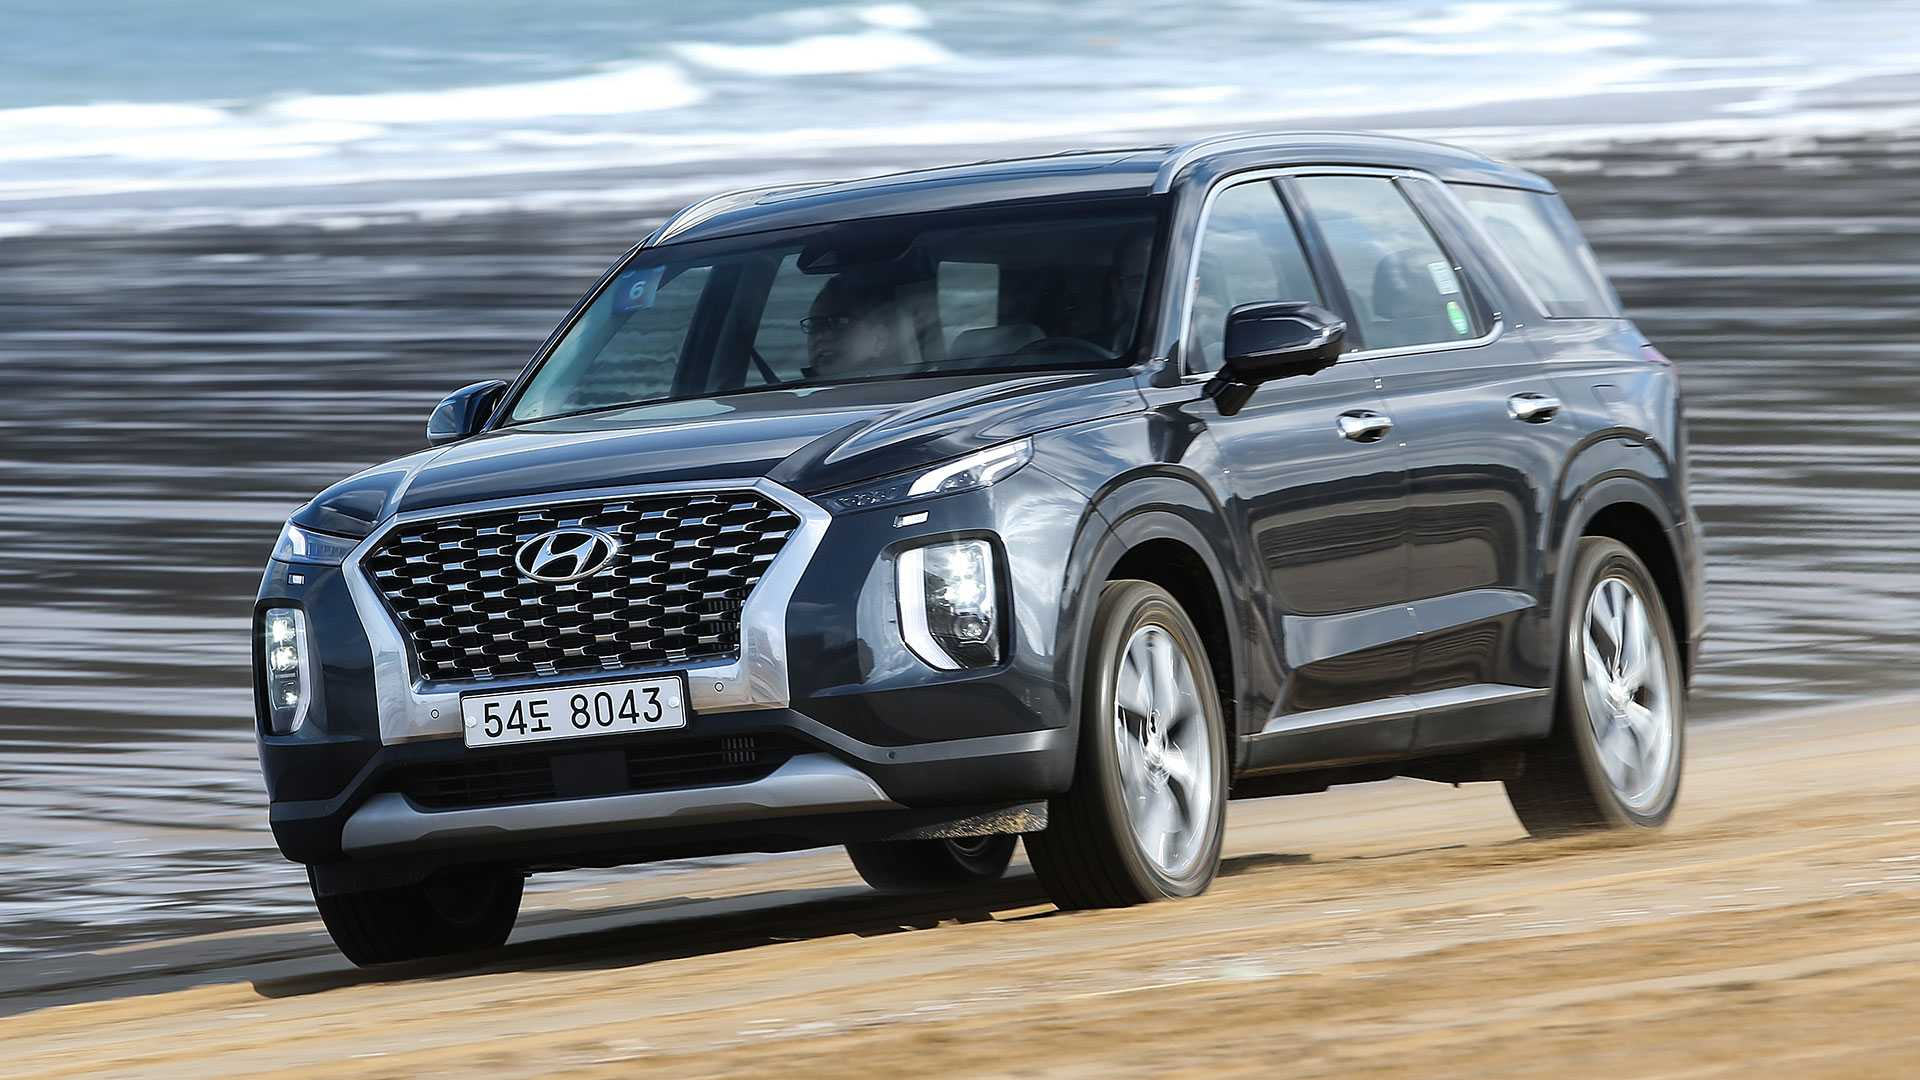 29 All New Hyundai Palisade 2020 Interior Picture for Hyundai Palisade 2020 Interior